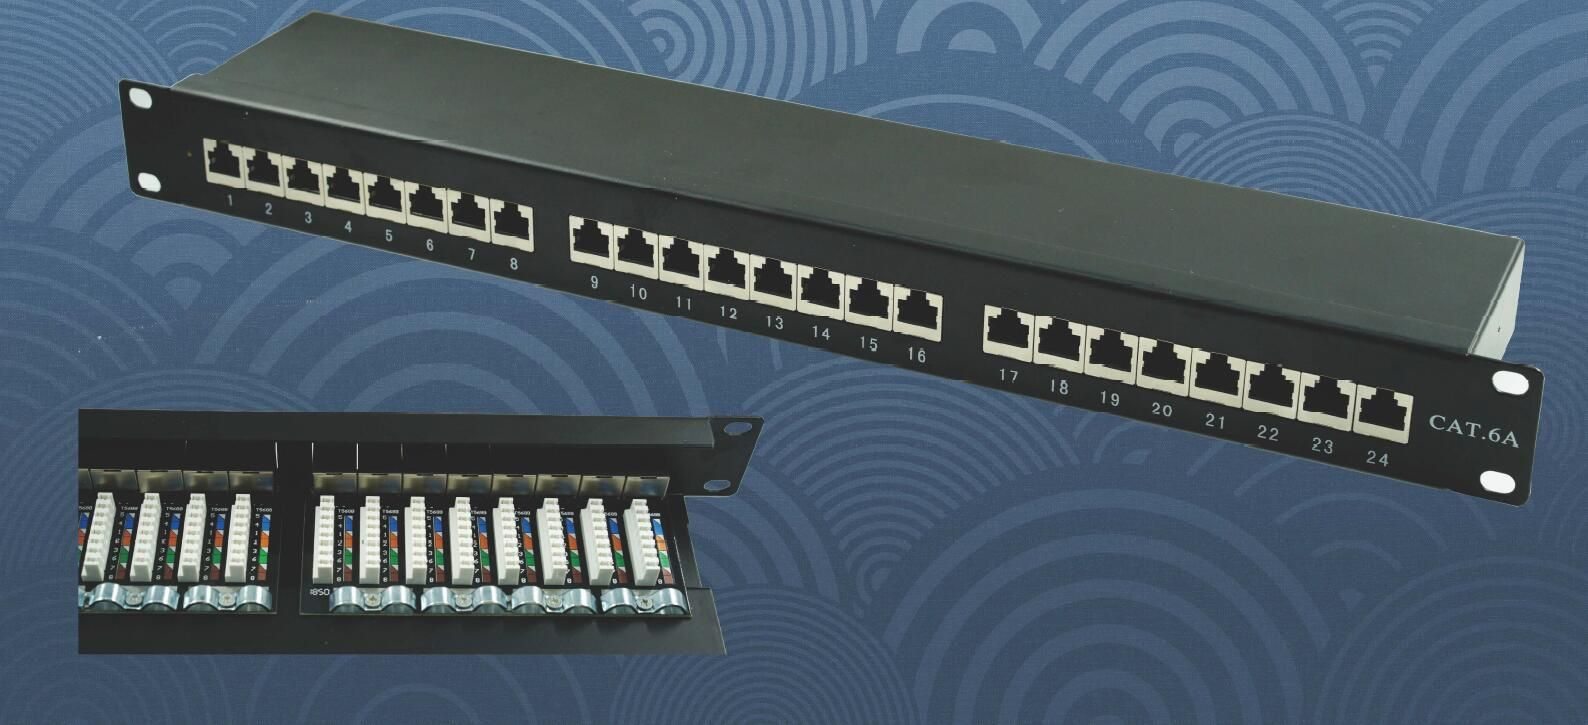 24 Port CAT6a RJ45 to Krone IDC Patch Panel for rack installation